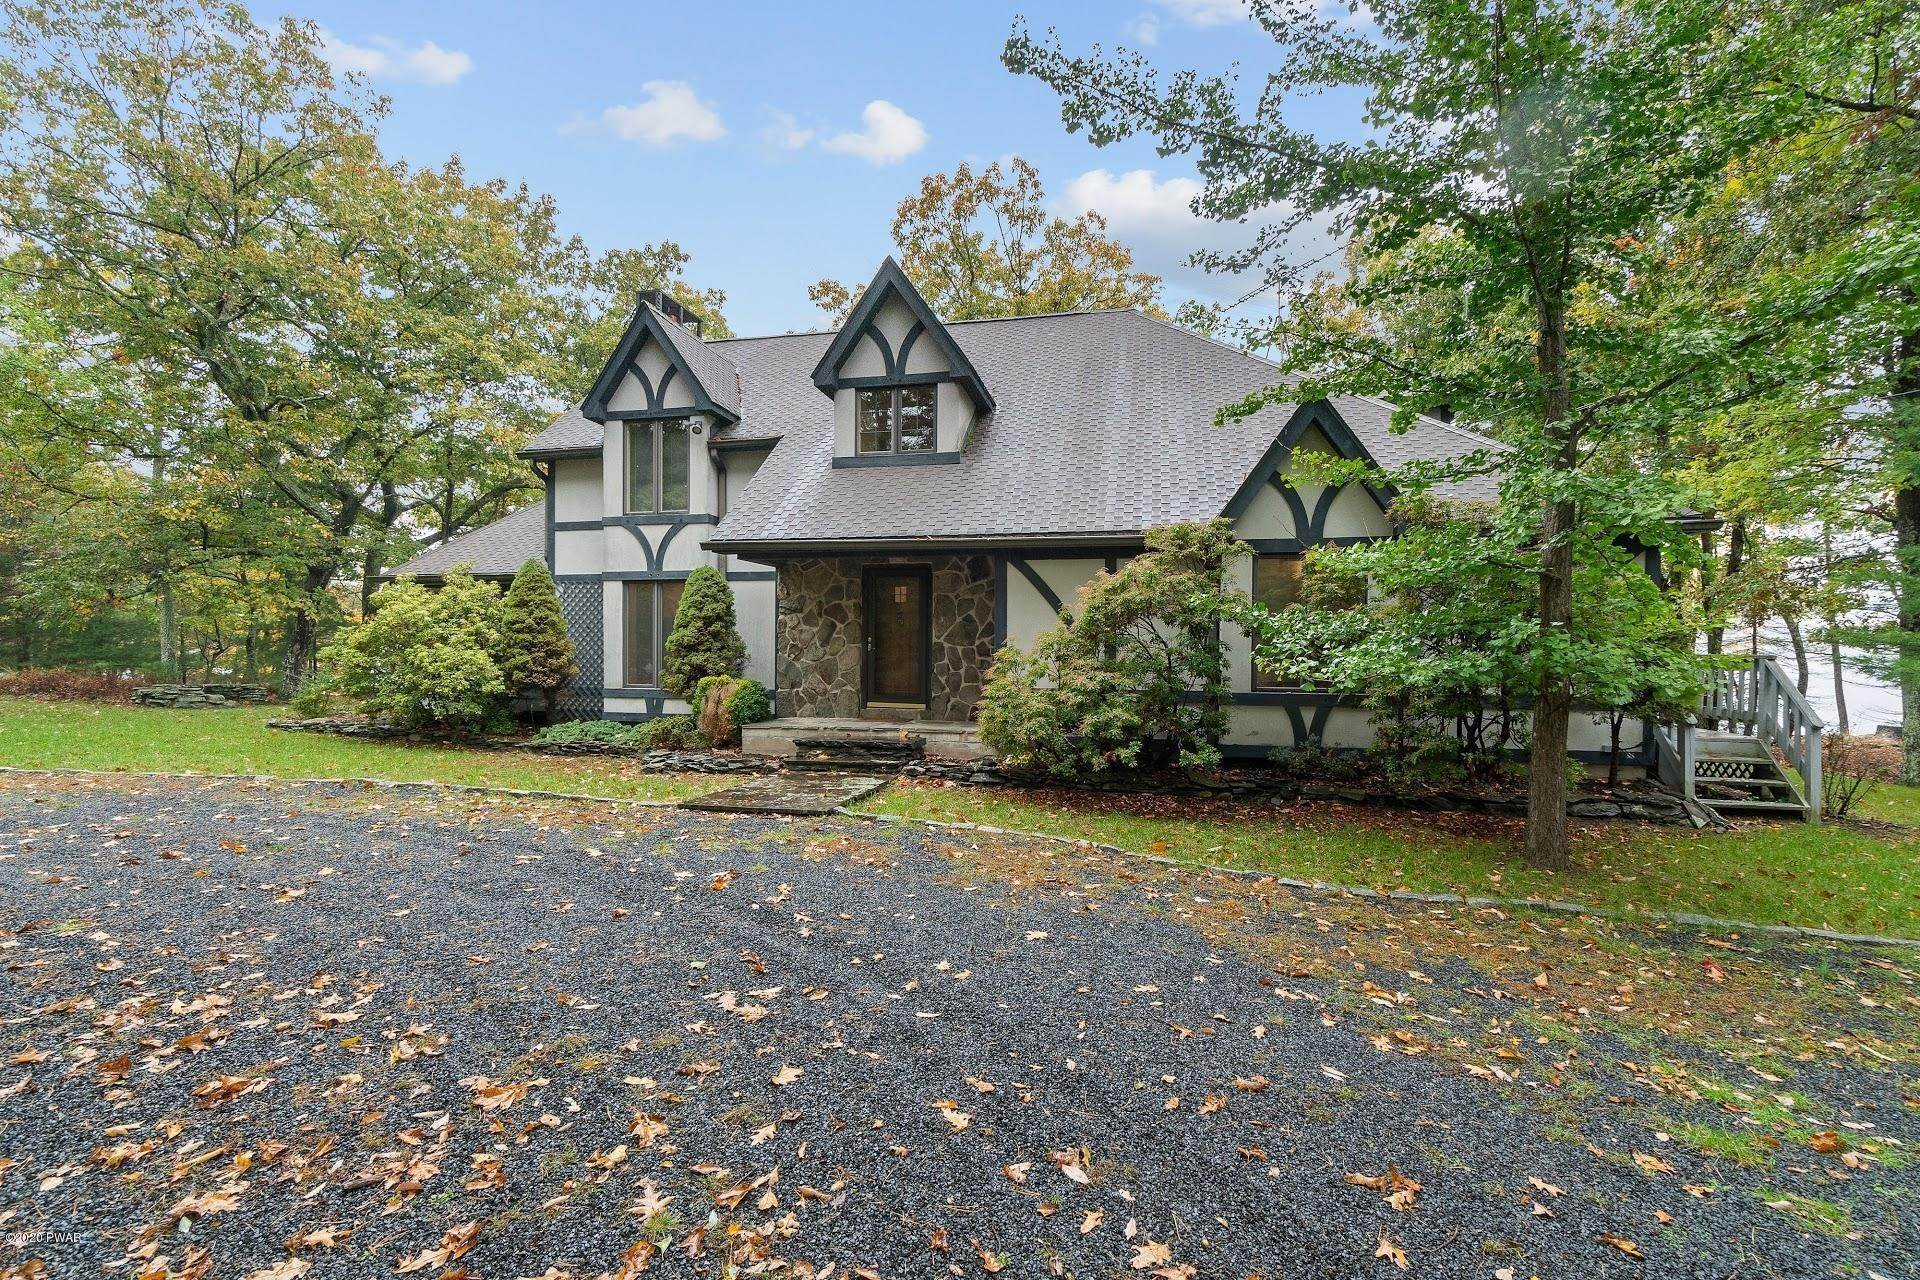 52. Single Family Homes for Sale at 114 Miller Ct Milford, Pennsylvania 18337 United States